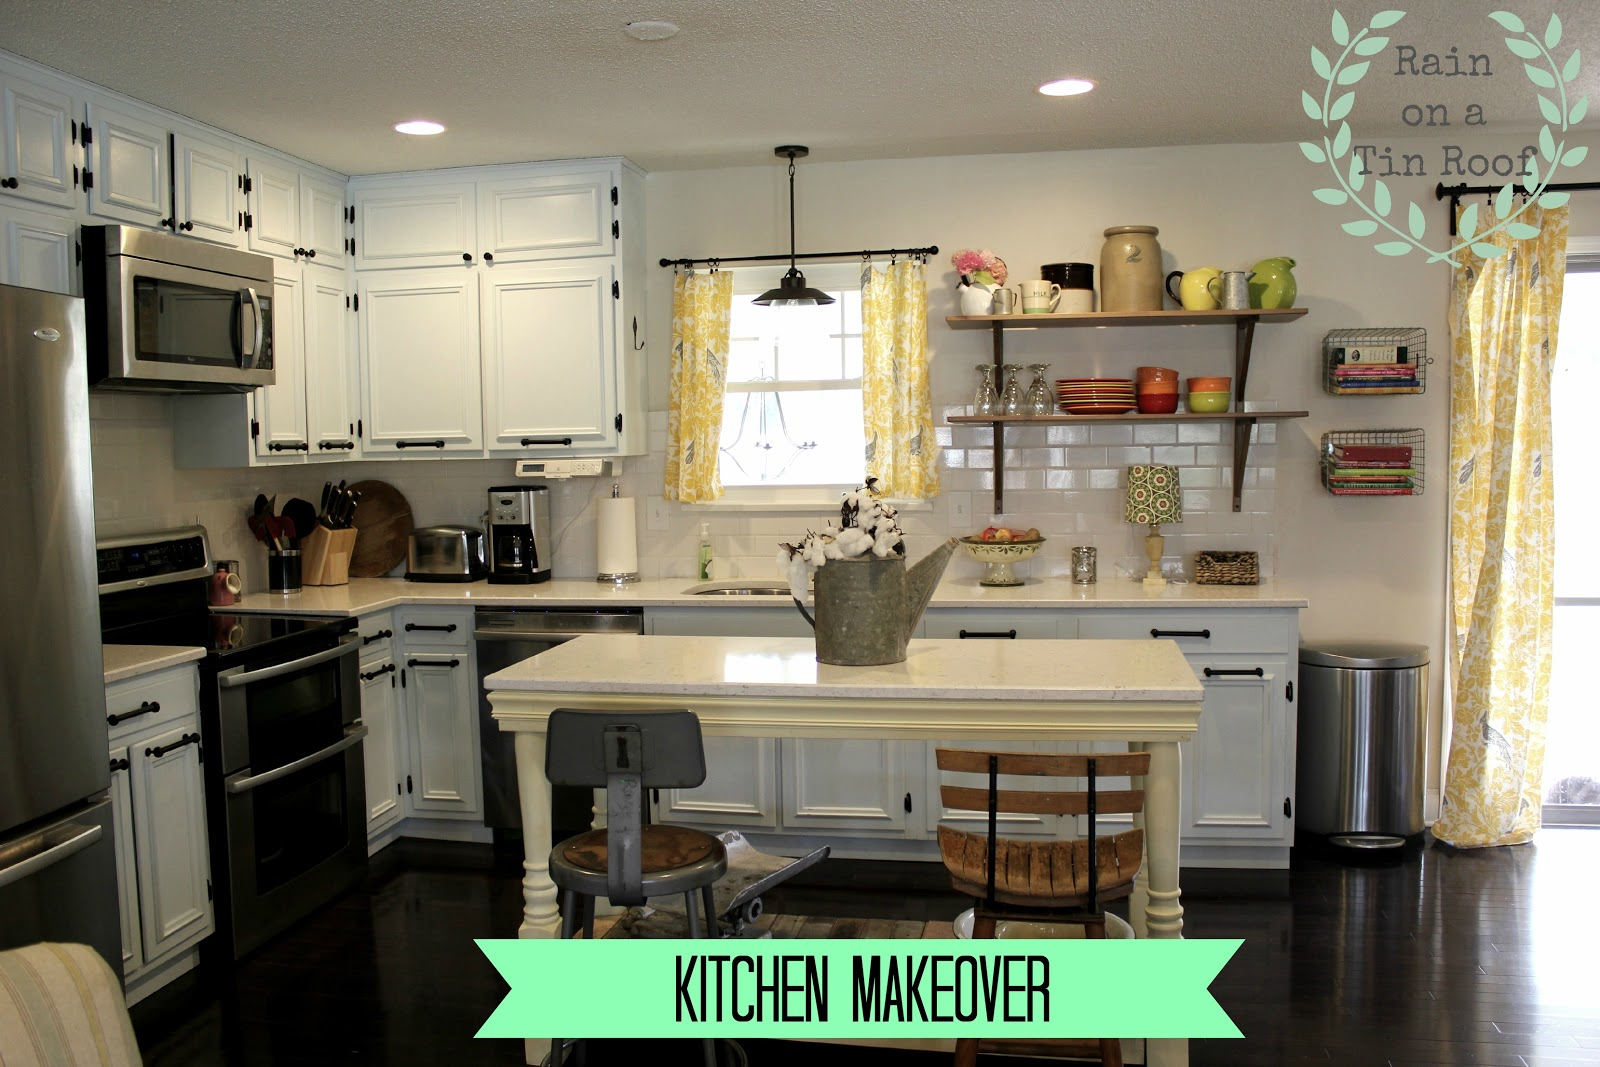 Kitchen Makeover Kitchen Reveal The Kitchen Renovation Is Complete